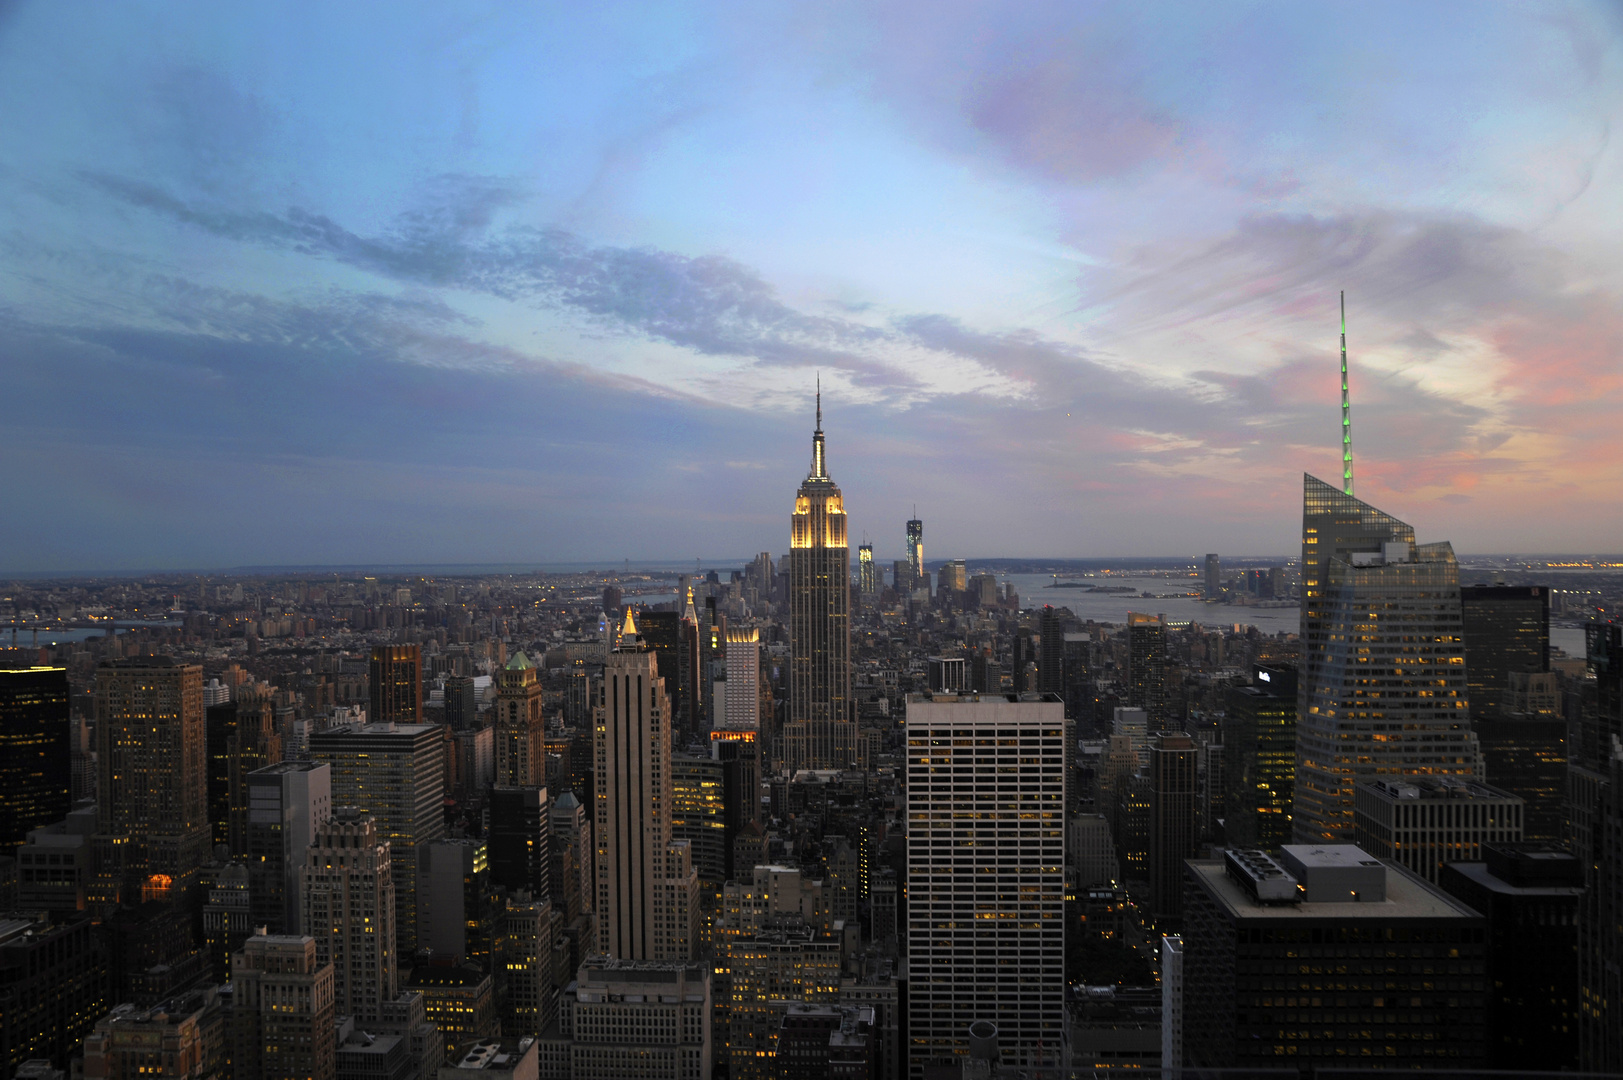 When the sun goes down in NYC...